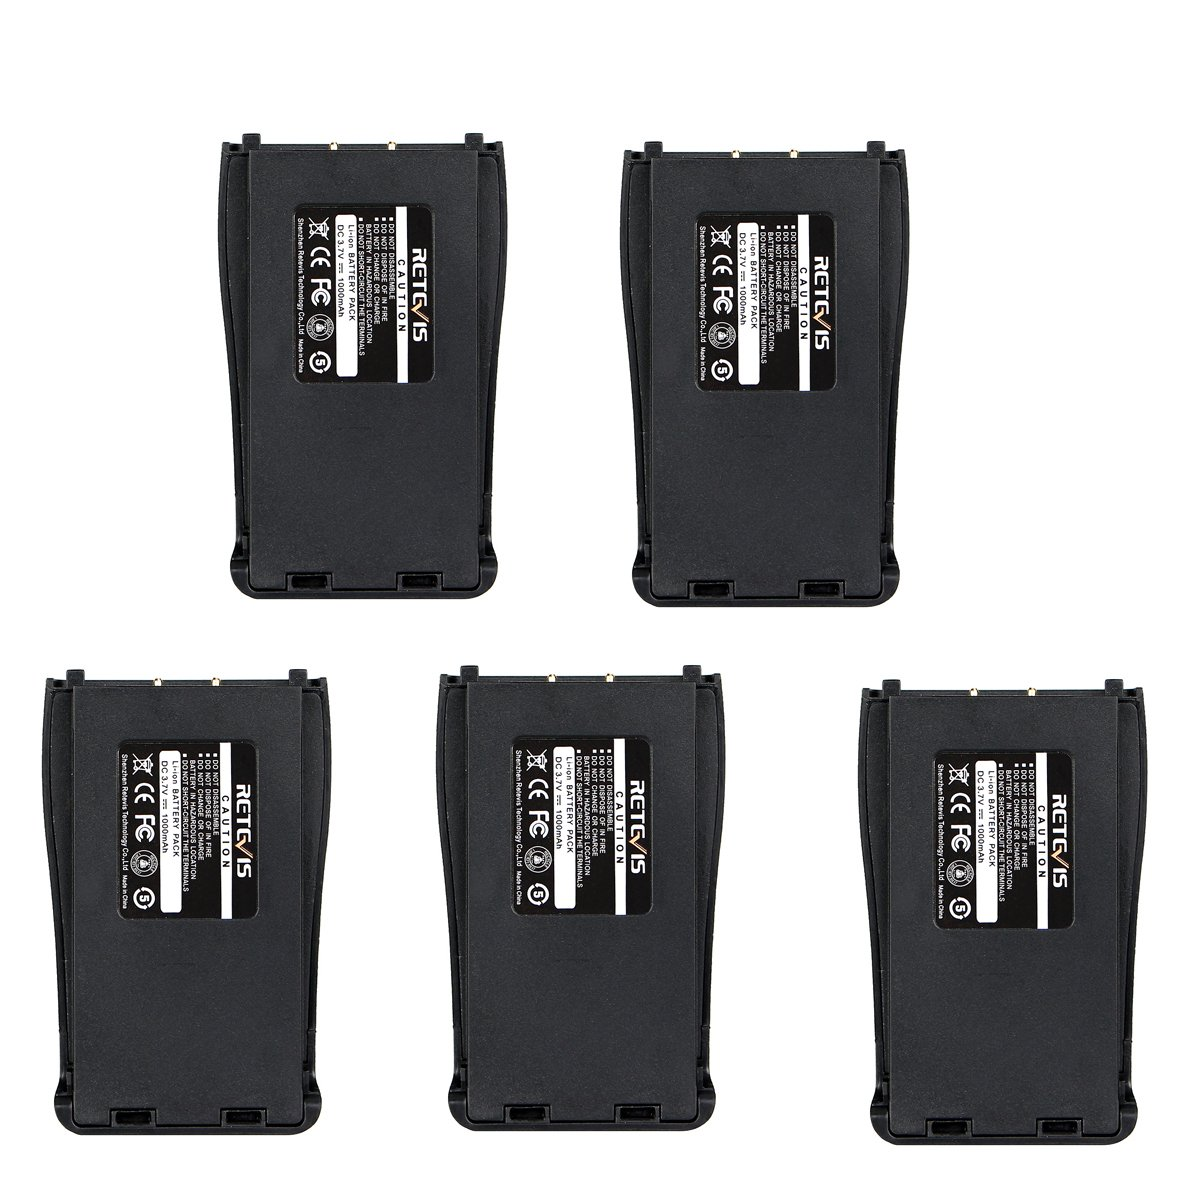 Retevis Two-Way Radio Battery 1000mAh Original Replacement Battery for Retevis H-777 Baofeng BF-888S Arcshell AR-5 Walkie Talkie (5 Pack)